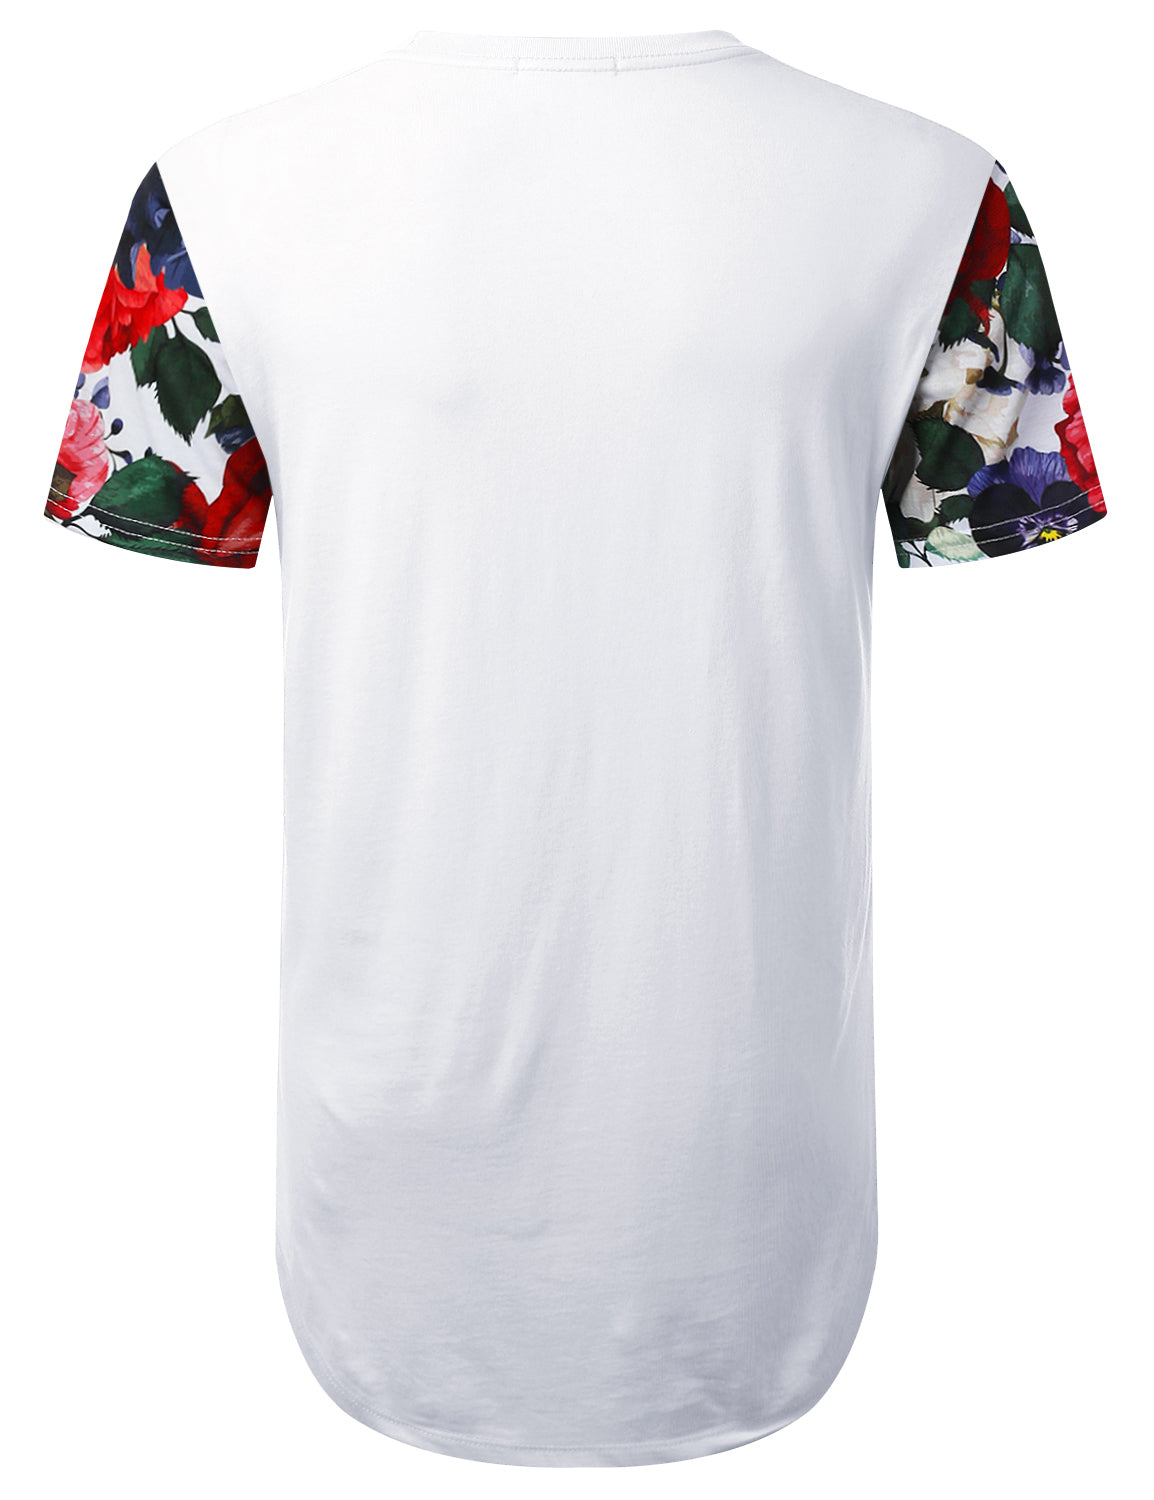 WHITE Rose 90 Graphic Longline T-shirt - URBANCREWS